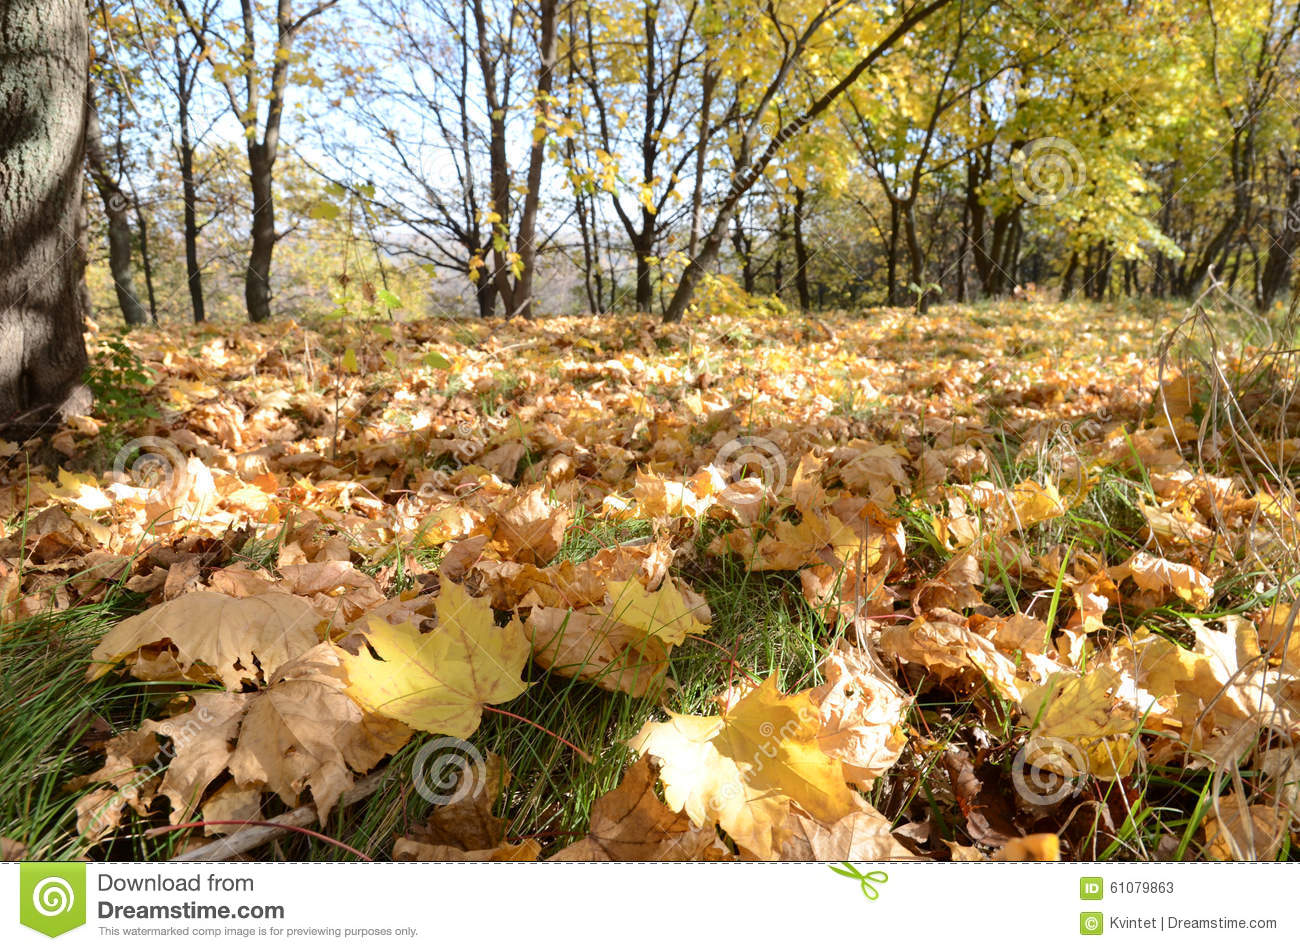 Curly yellow maple leaves on grass in autumn forest, abstract background